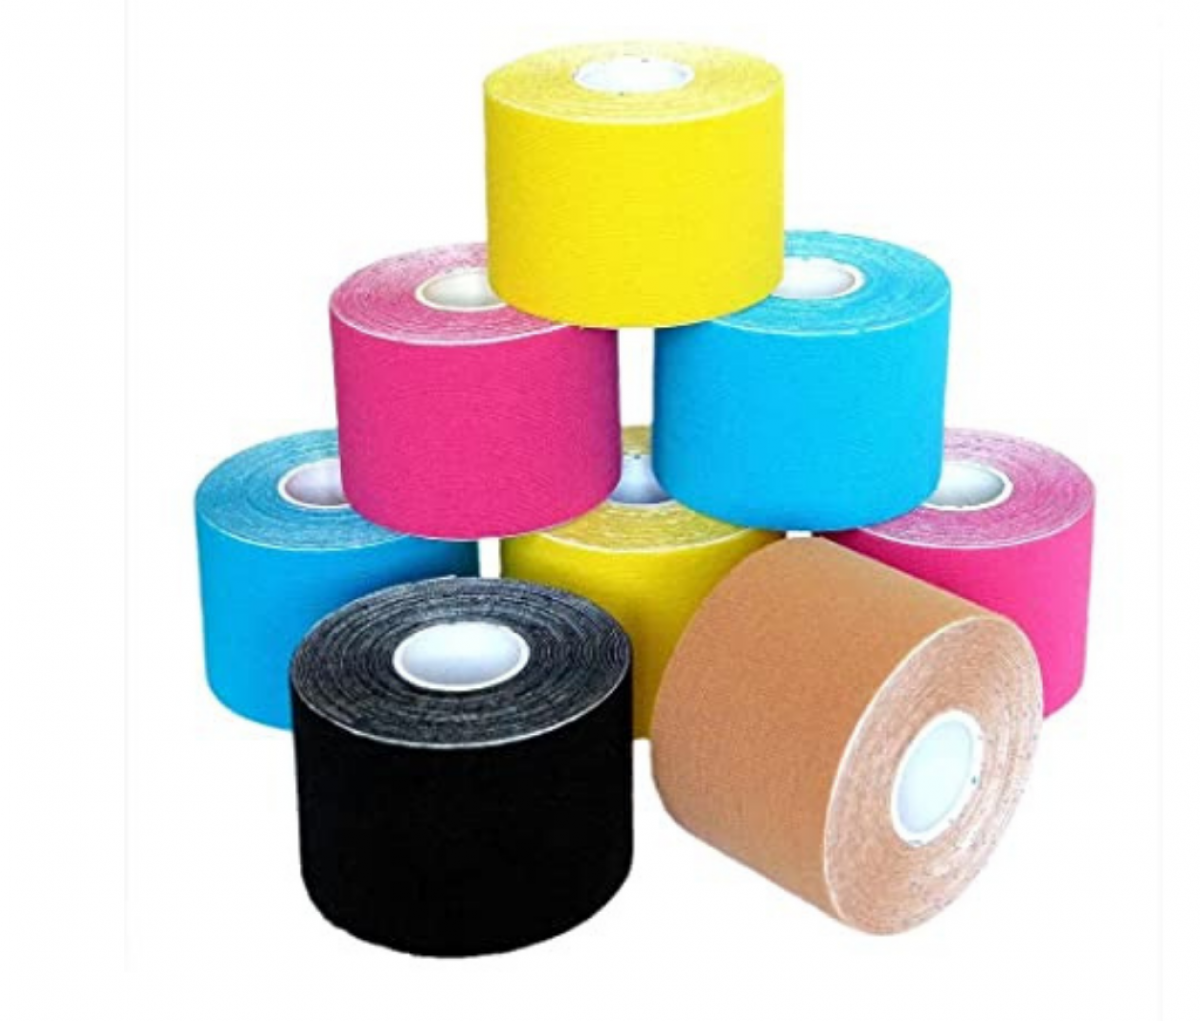 KINESIOLOGY TAPE - 5 CM X 5 M ASSORTED COLORS